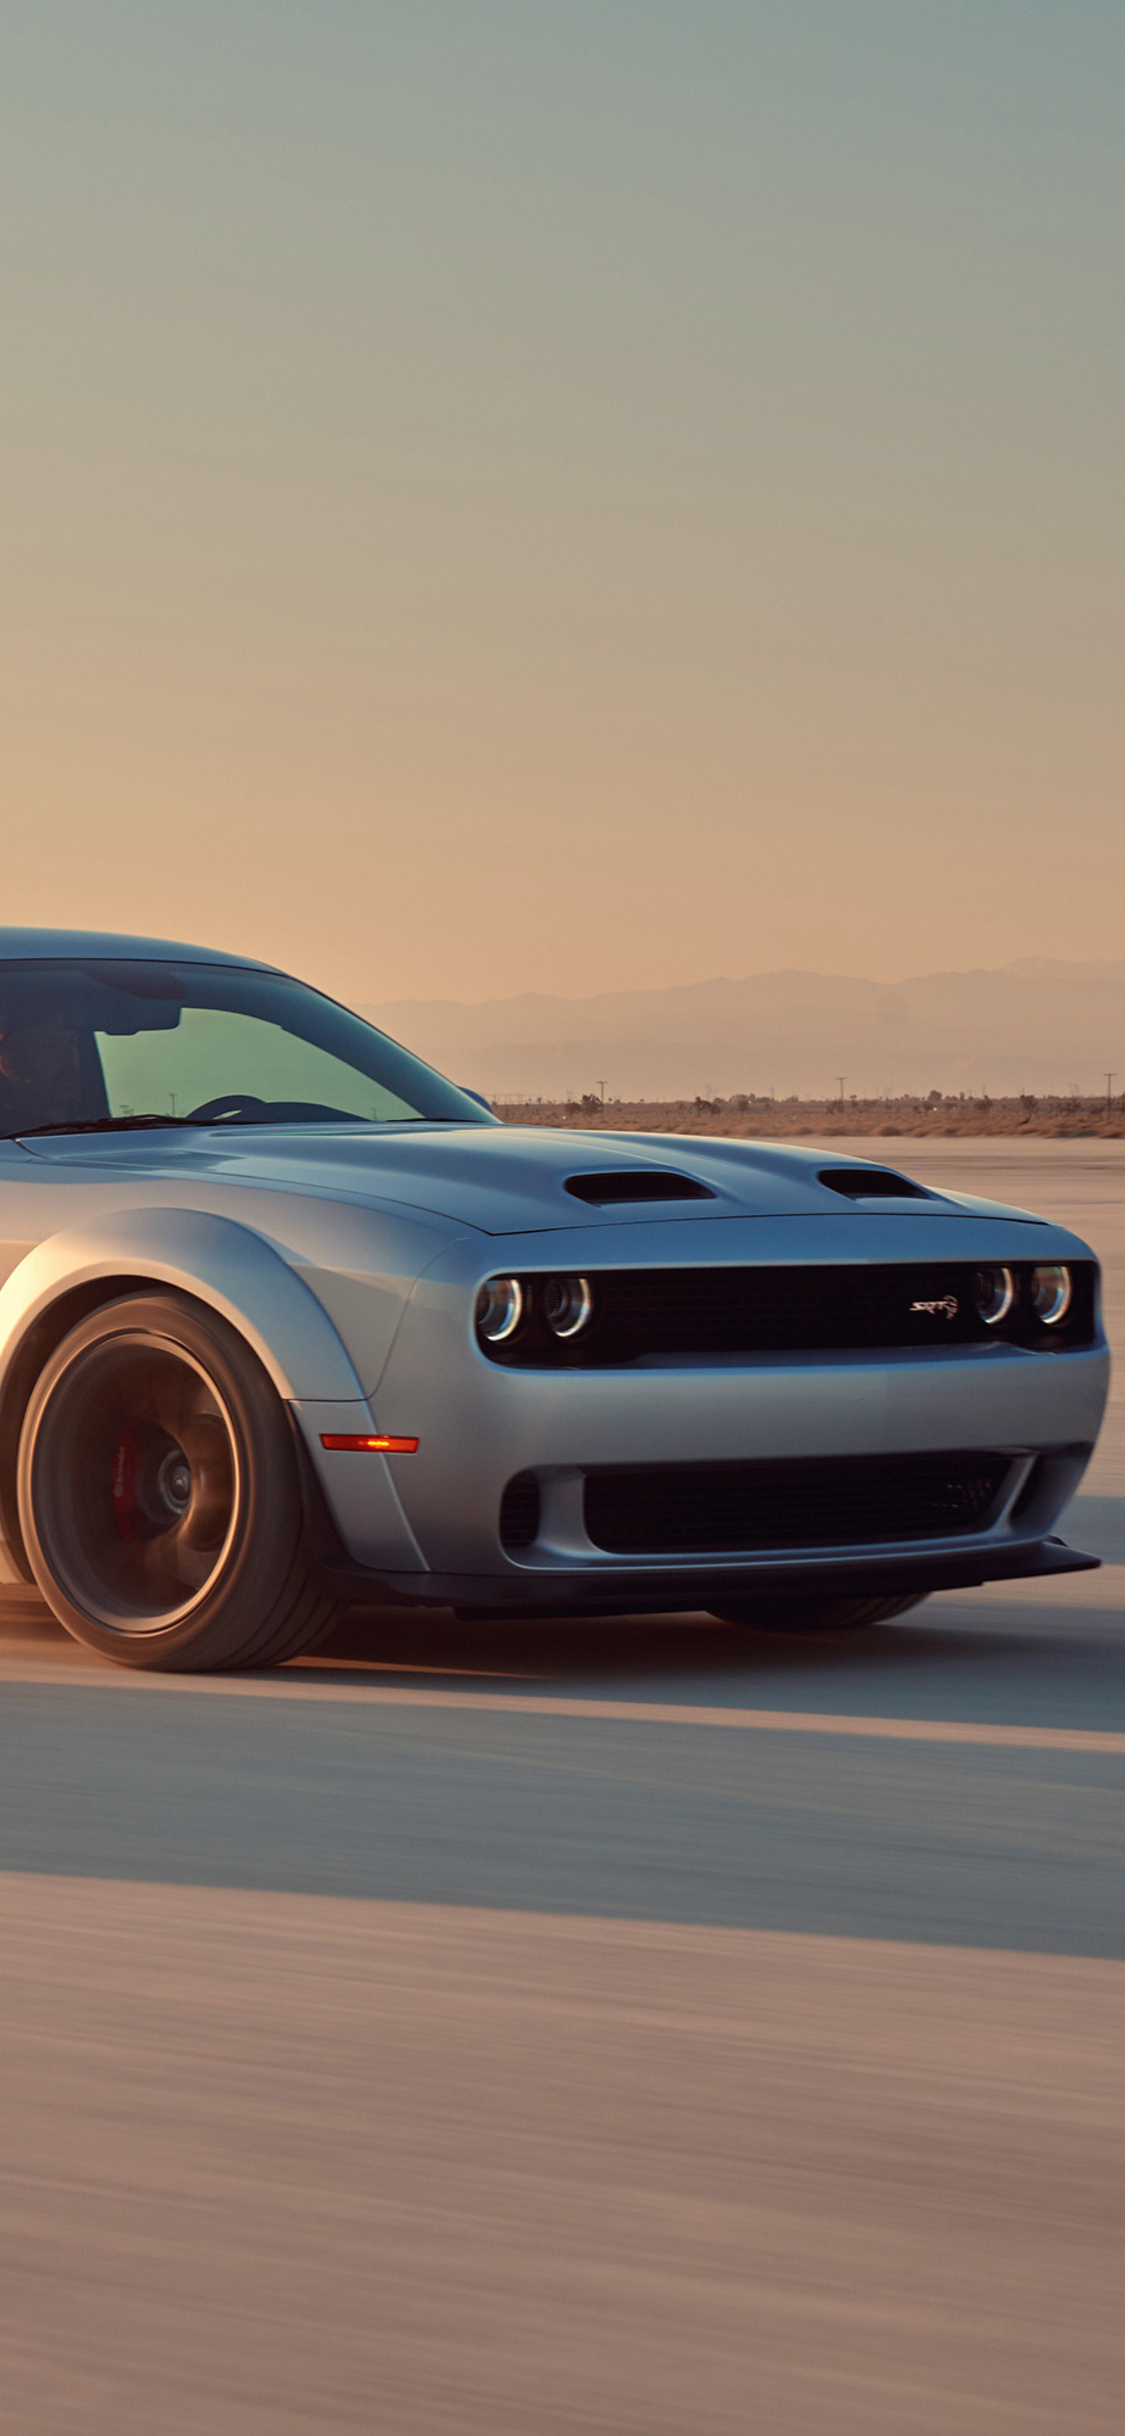 1125x2436 Dodge Challenger Srt Hellcat 2018 Iphone Xs Iphone 10 Iphone X Hd 4k Wallpapers Images Backgrounds Photos And Pictures